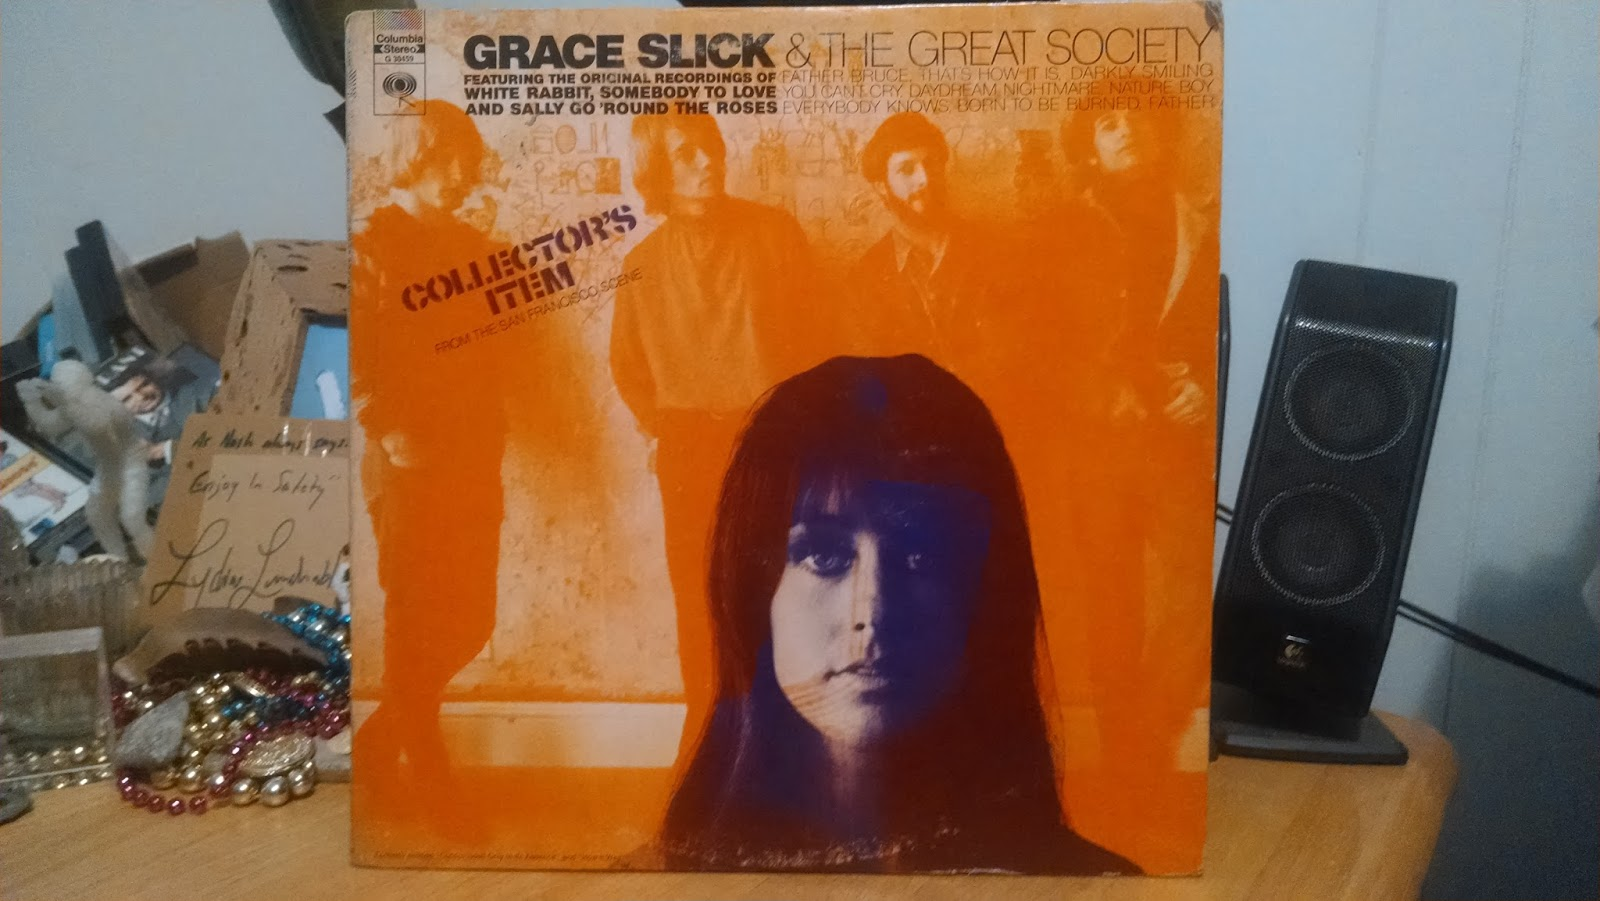 DOWN UNDERGROUND: GRACE SLICK AND THE GREAT SOCIETY